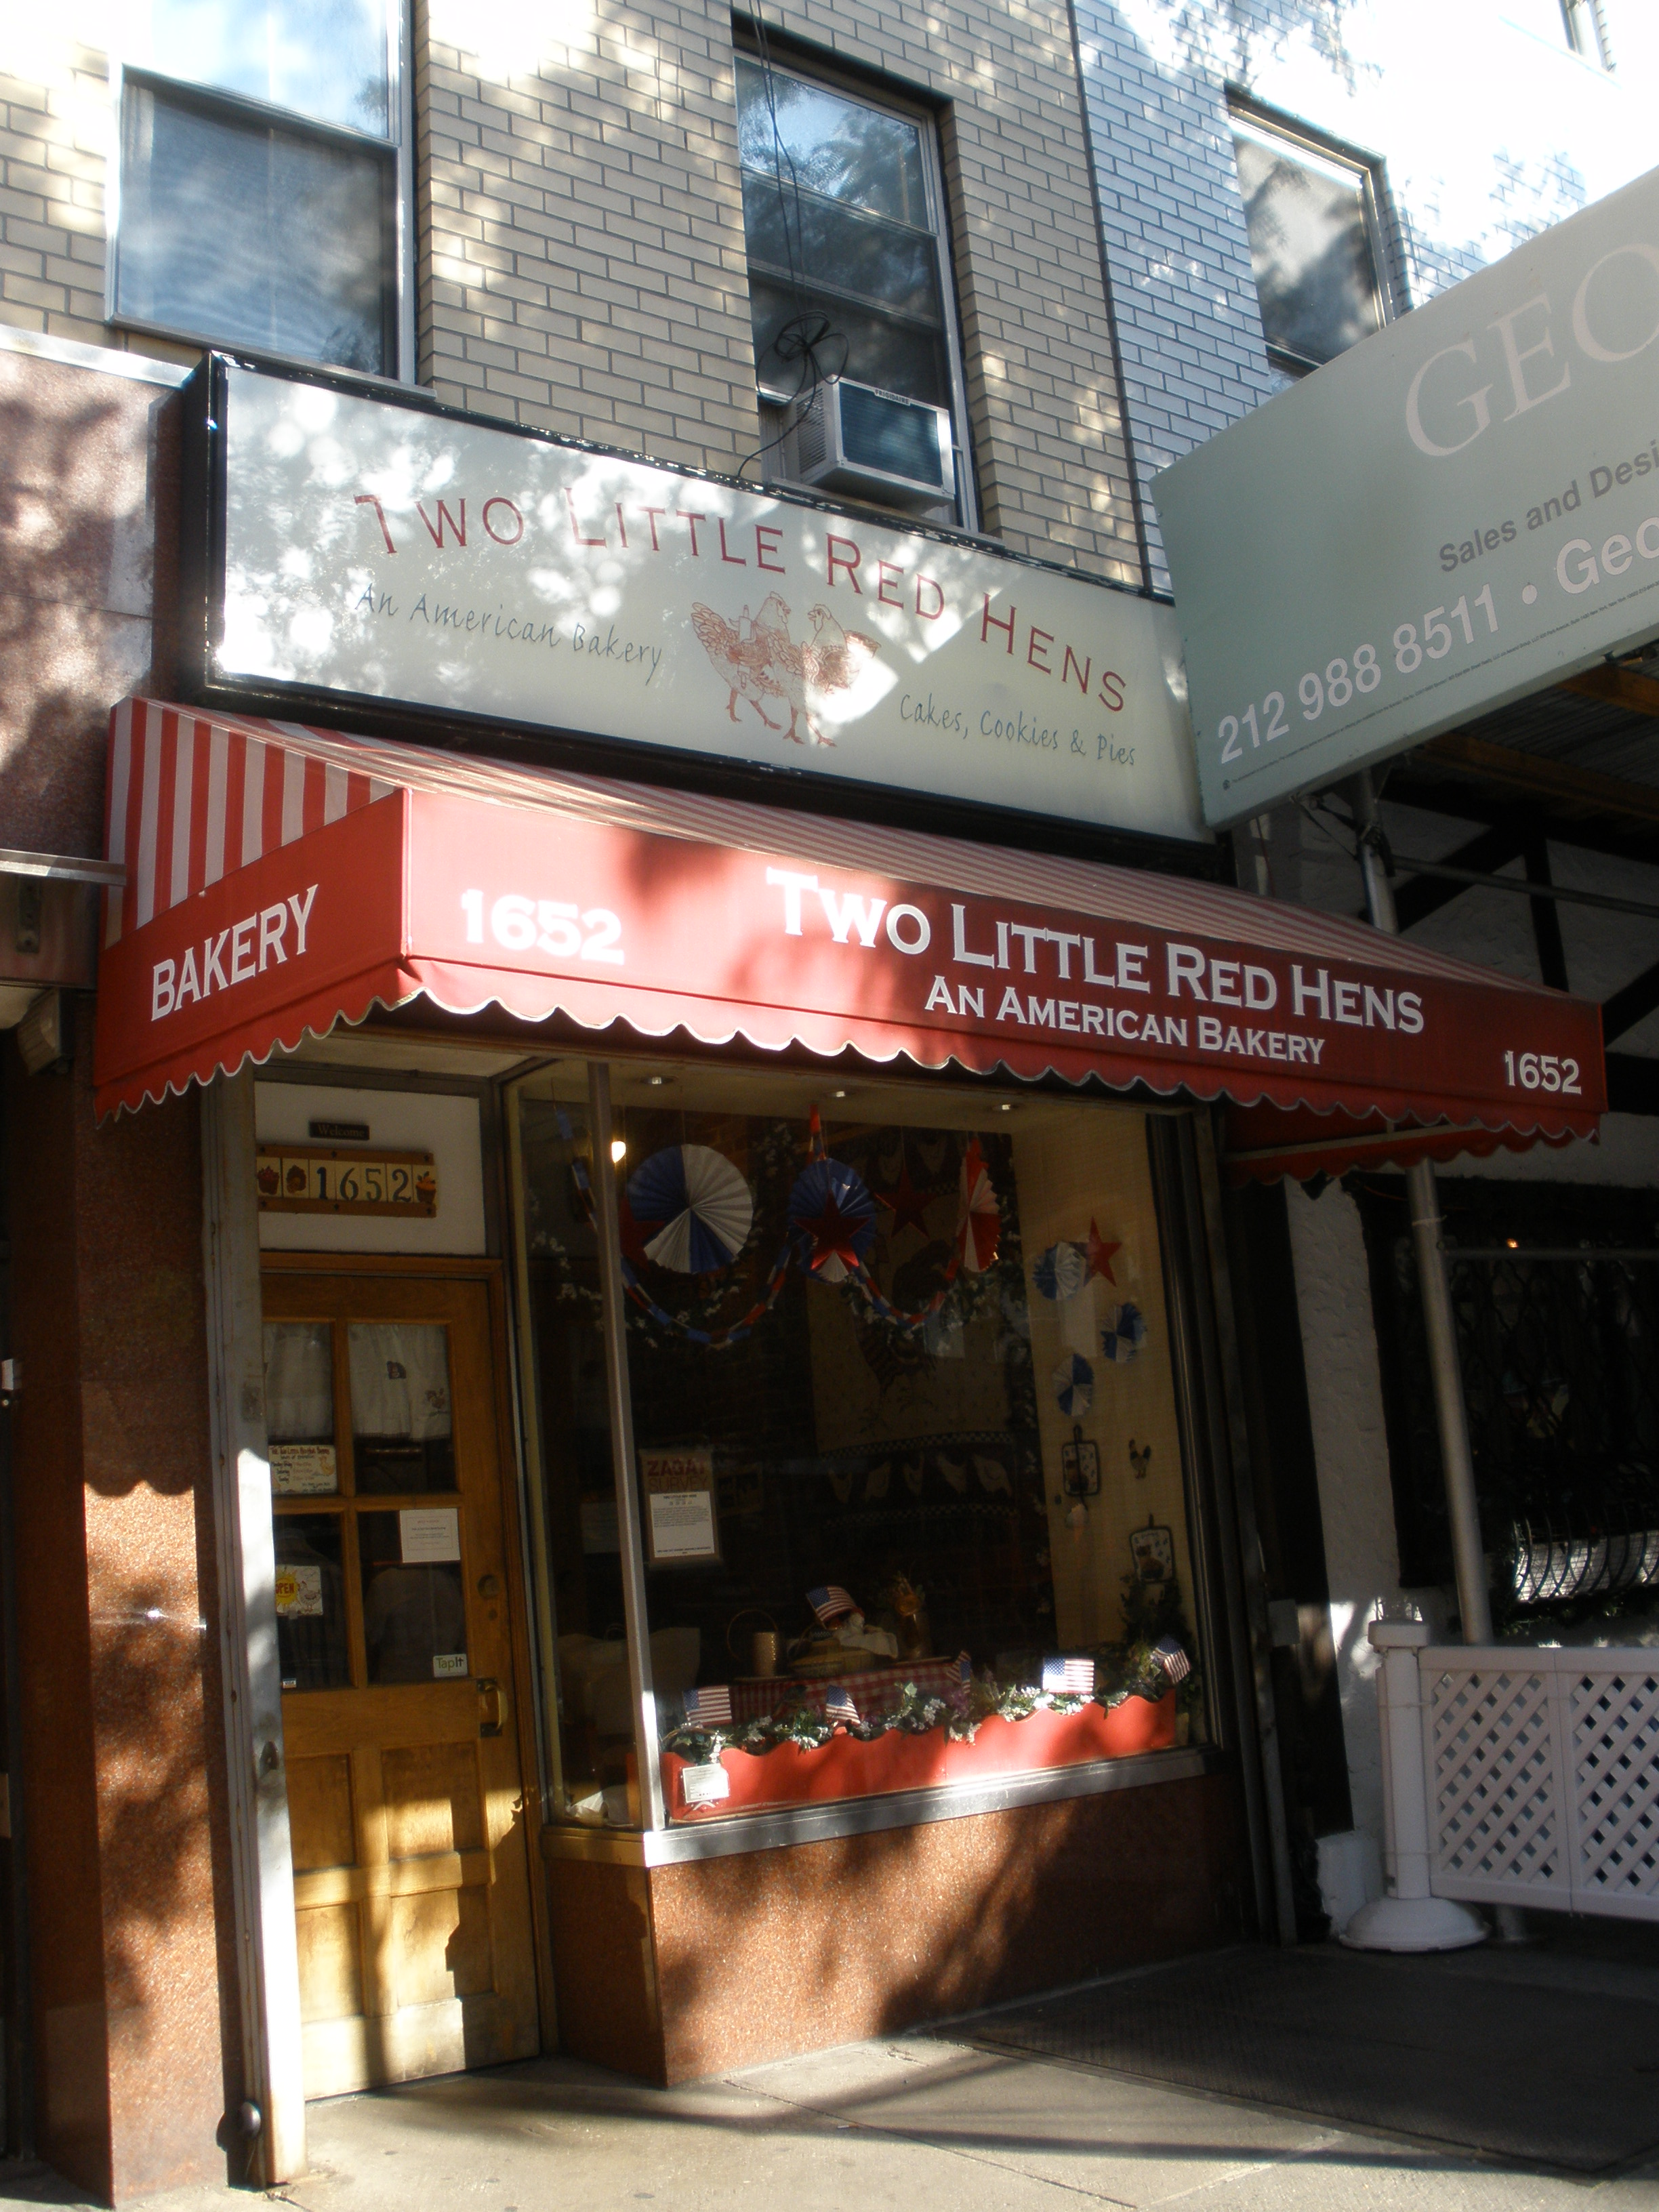 Another bakery front that gives off the cute, home-baked-with-love feeling.